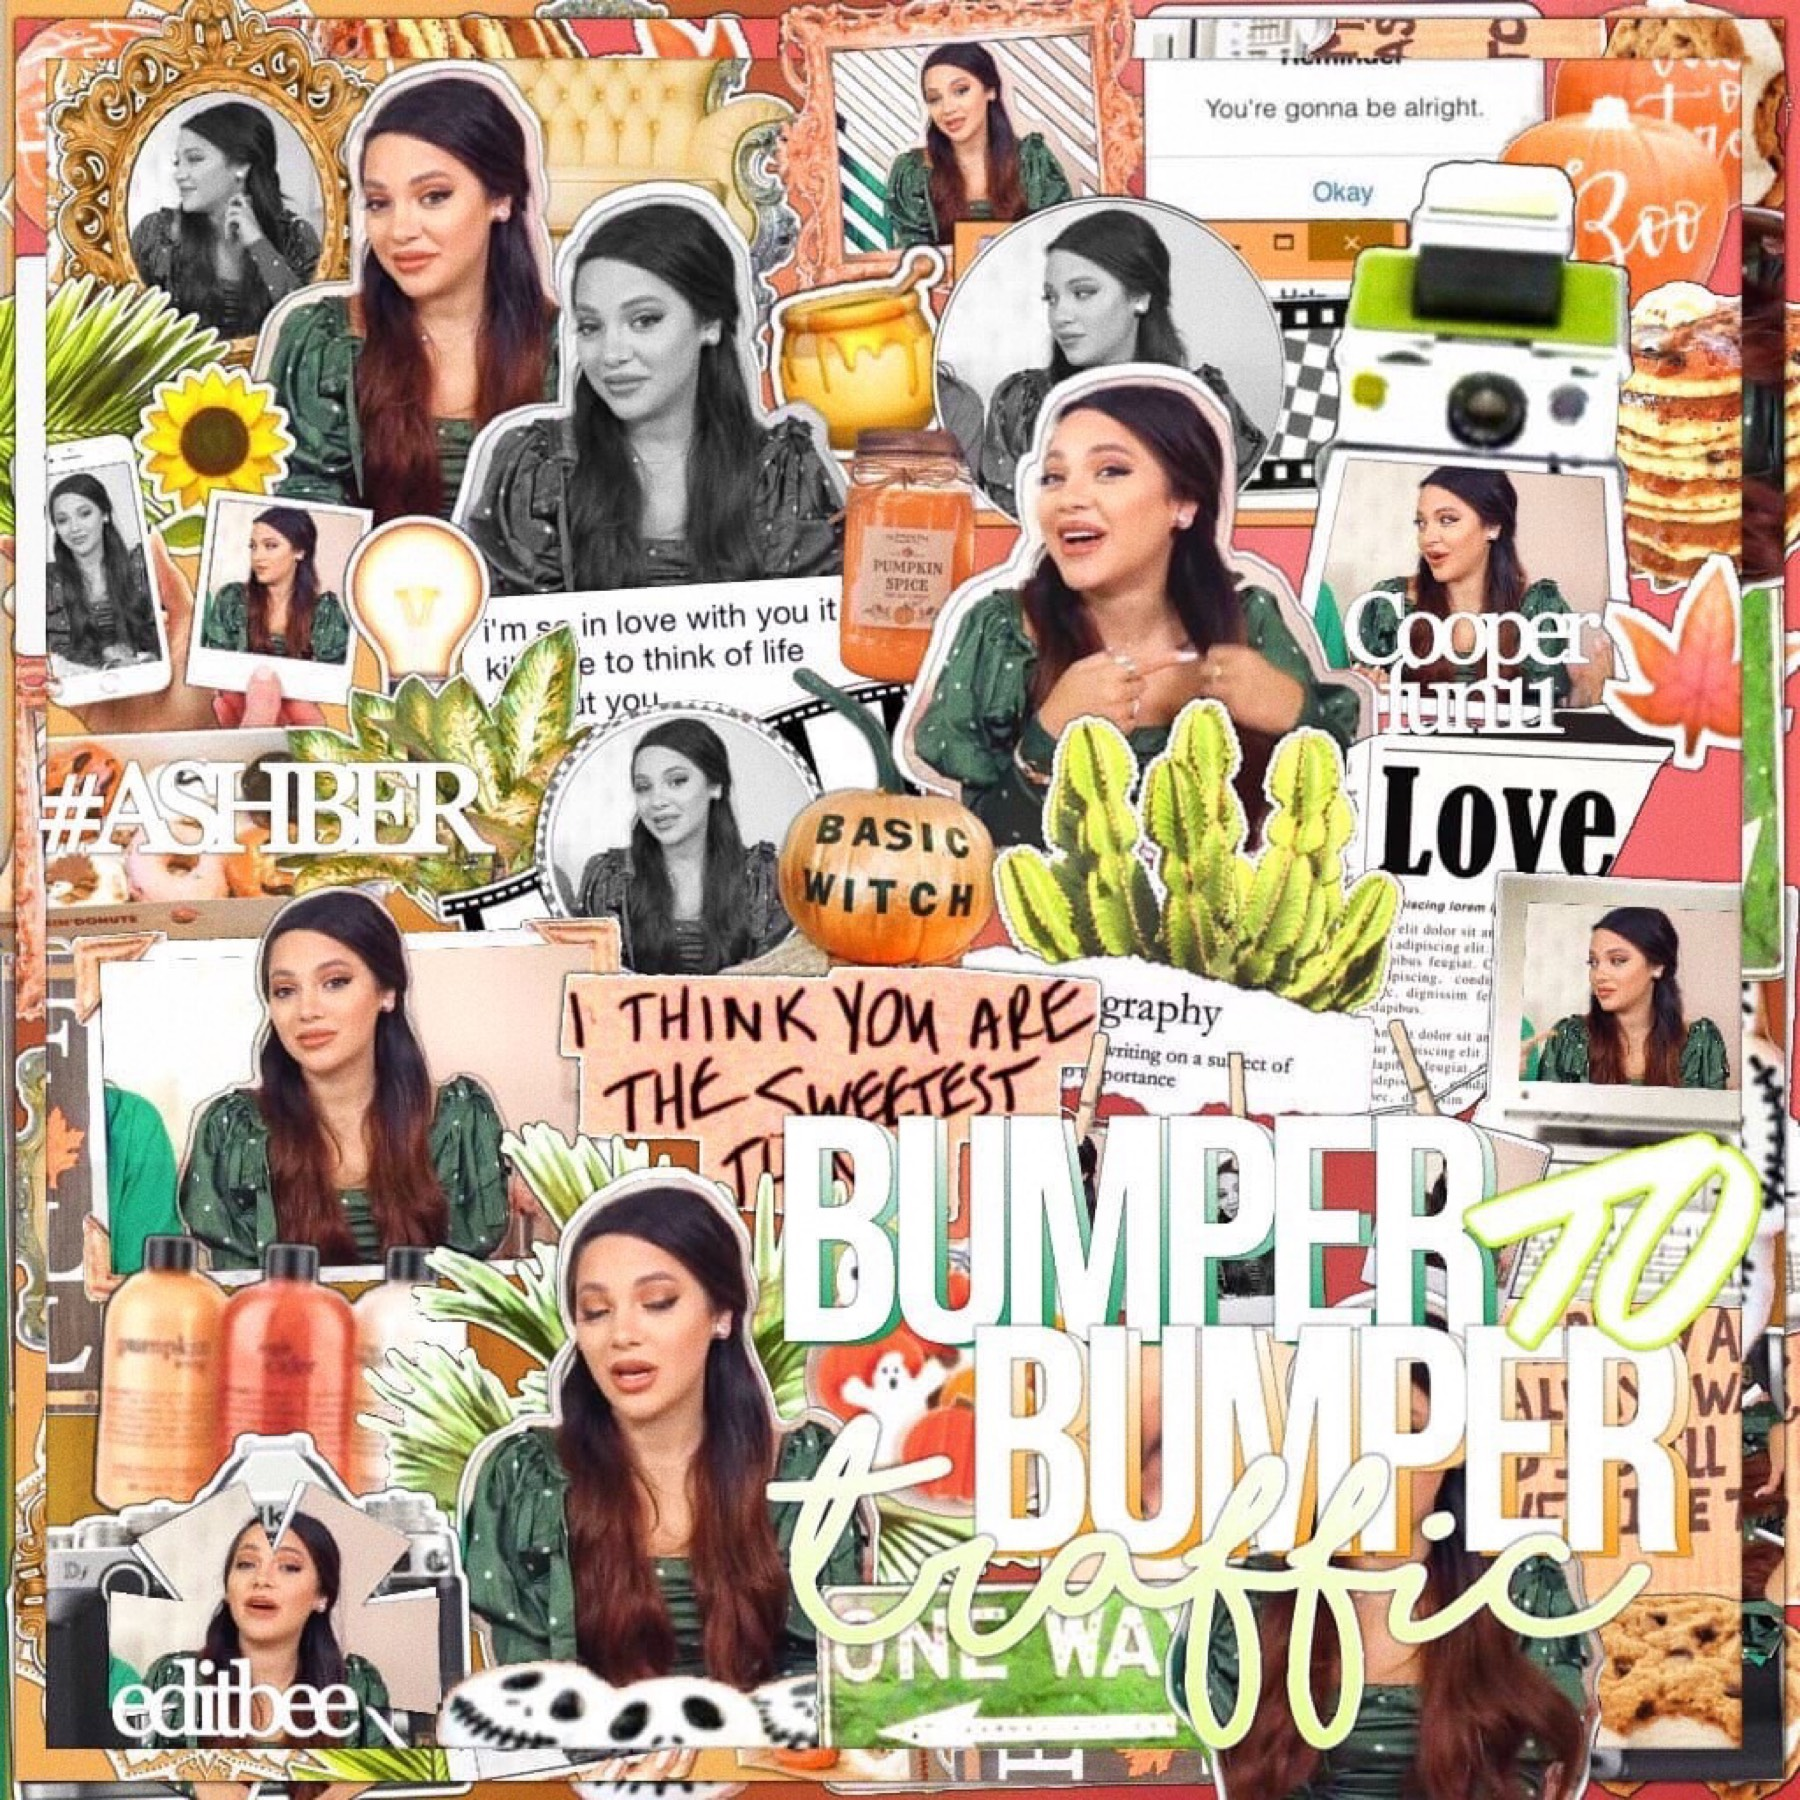 happy sunday!🧡 #ashber collab with the talented @editbee🌻🧸 whi: cooperfun11🍁 | 9/22/19🖤